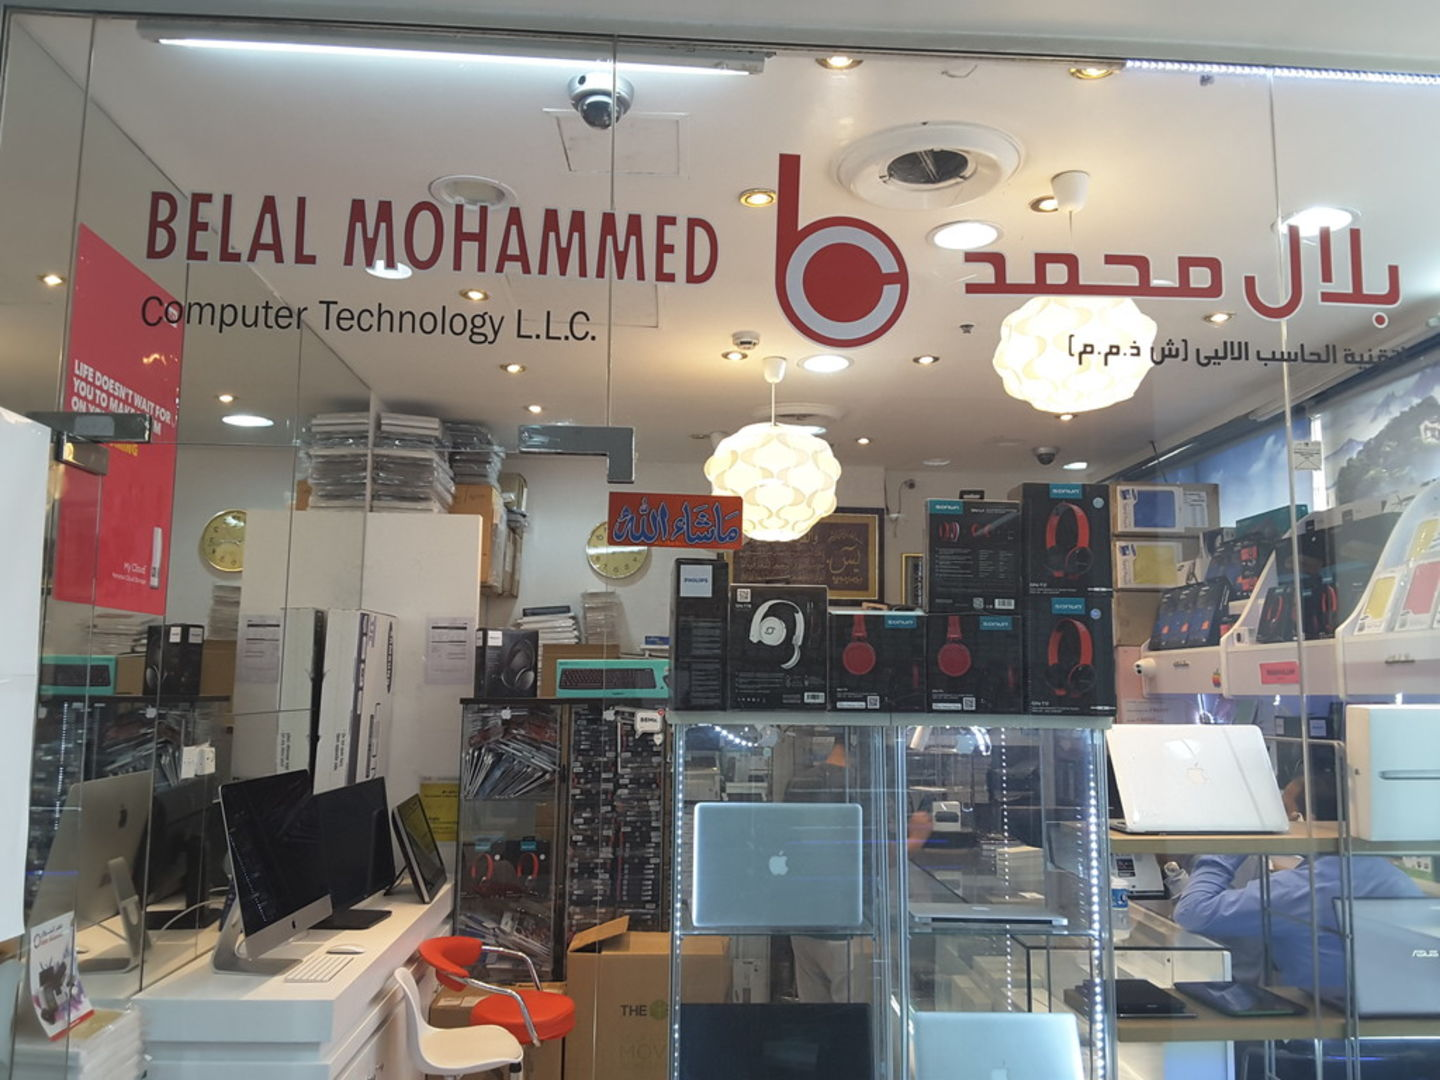 Walif-business-belal-mohammed-computer-technology